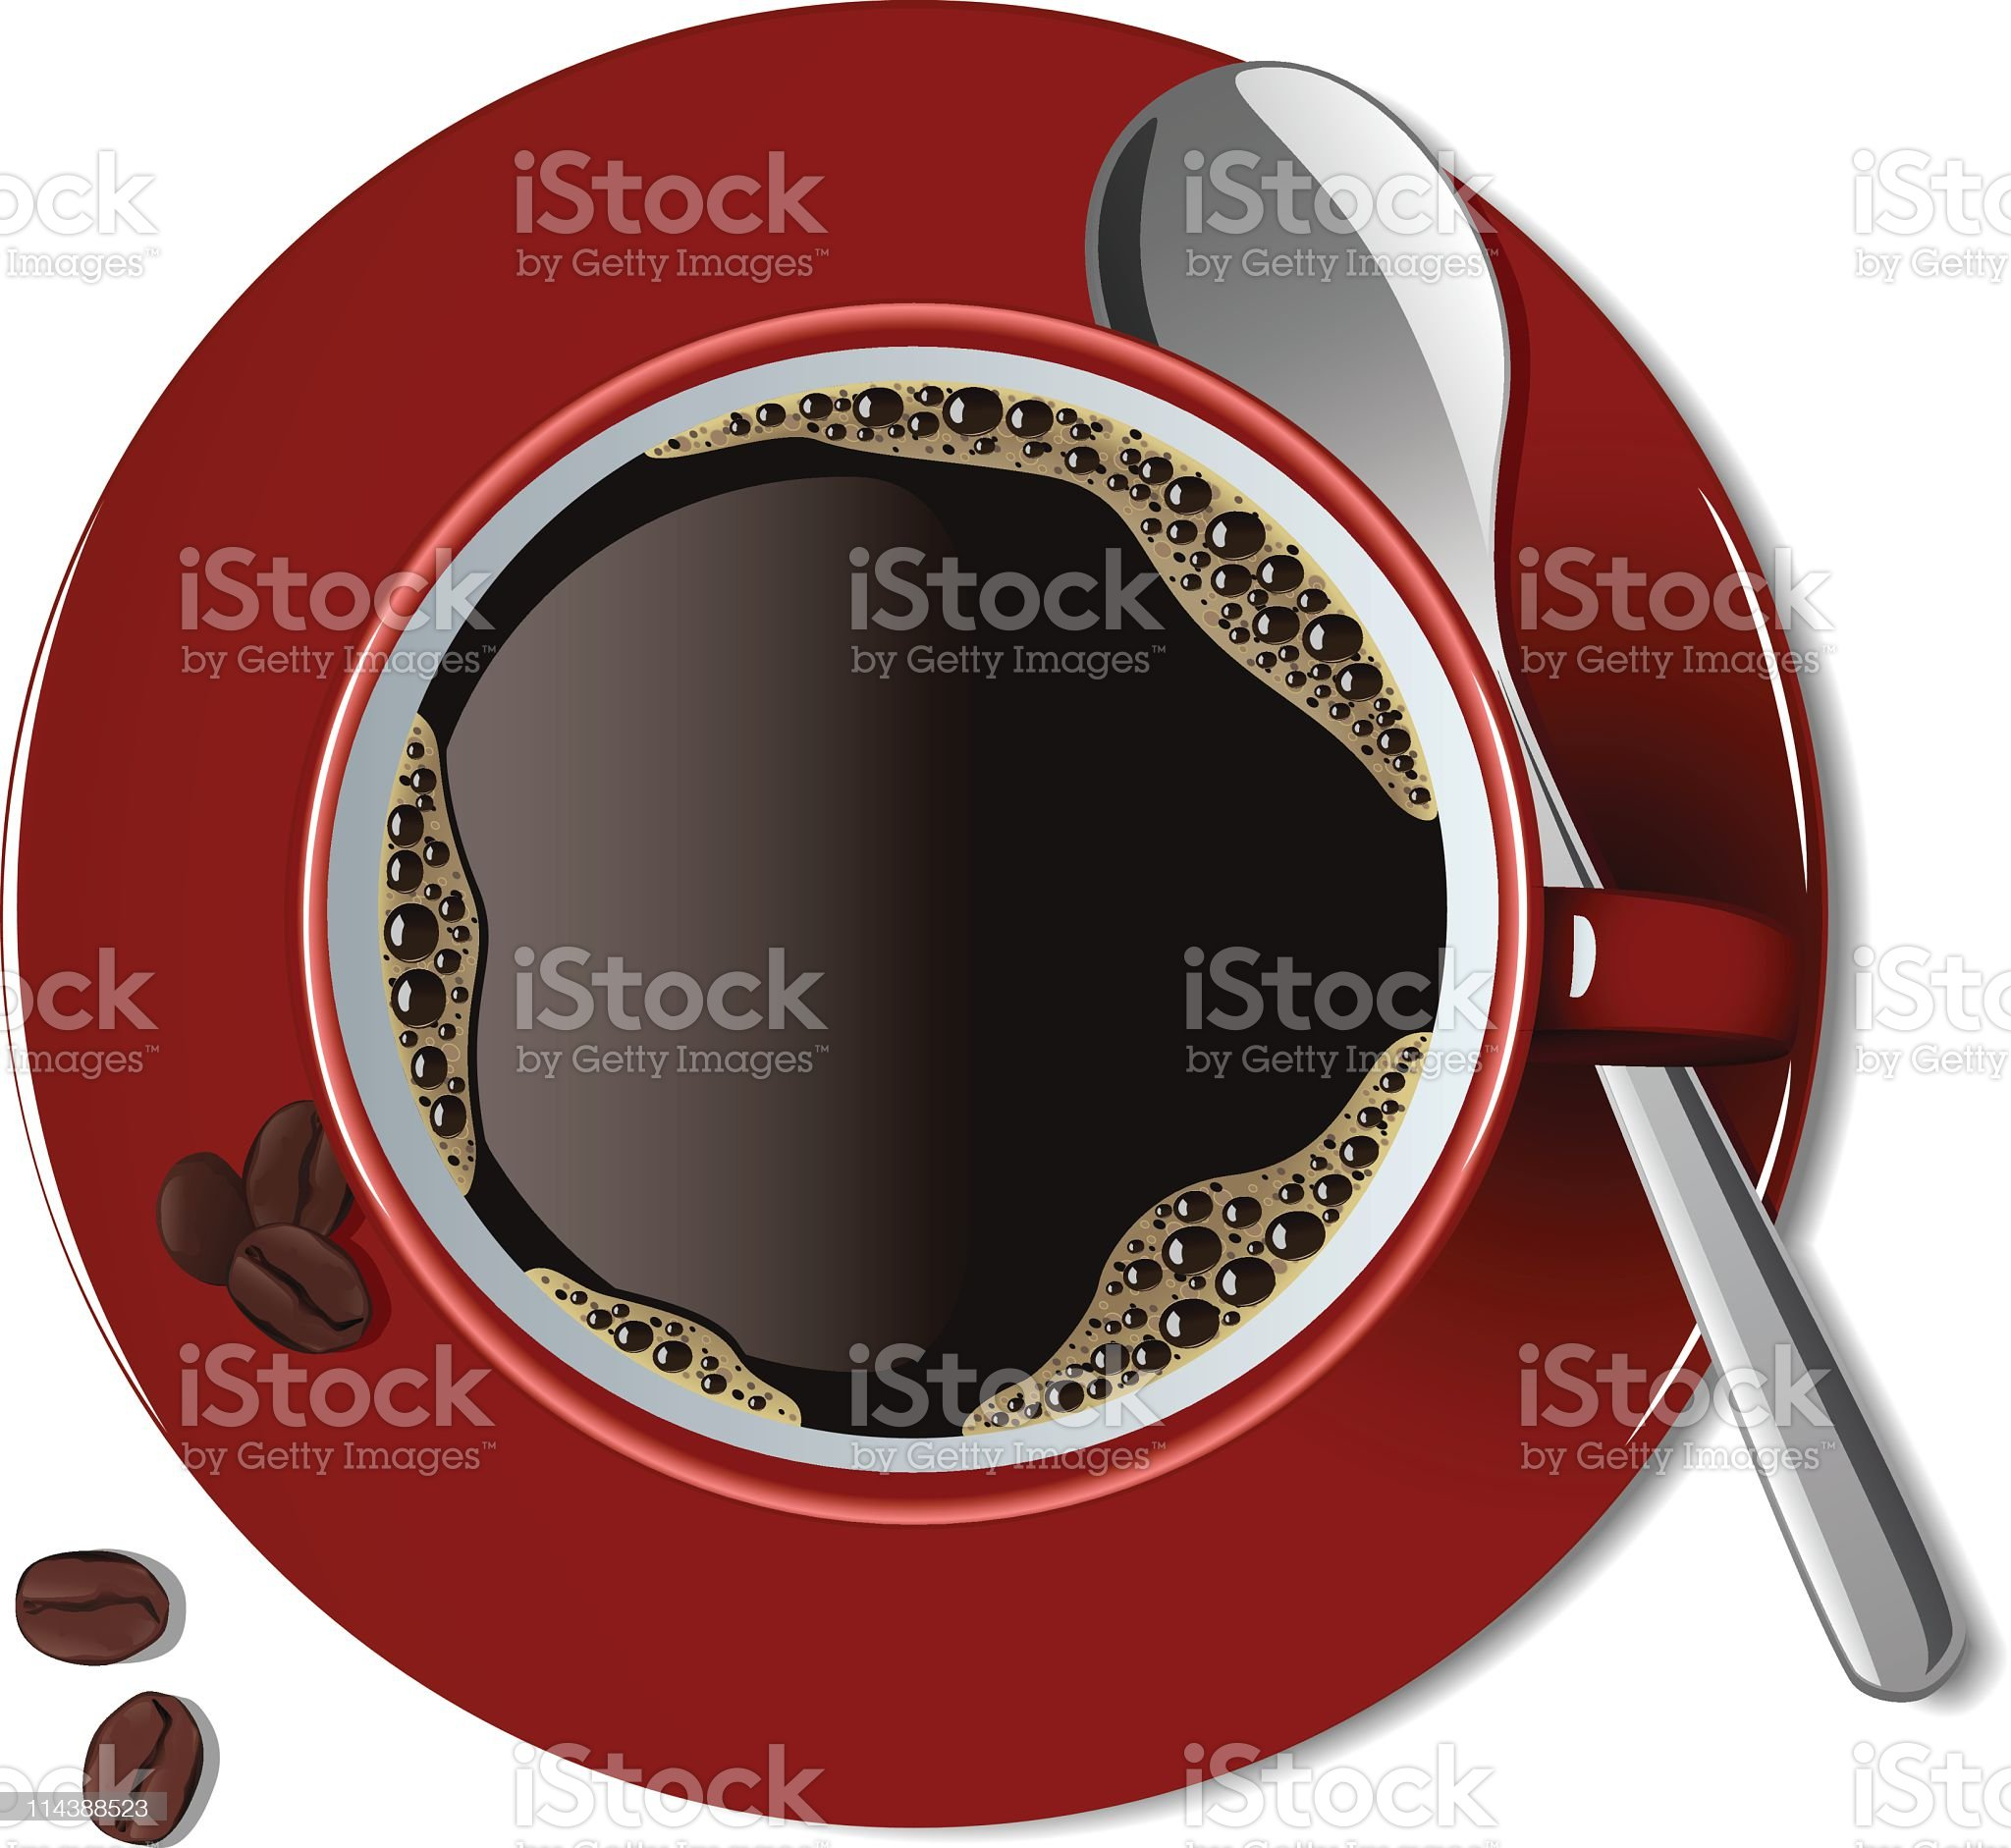 Coffee on a red plate with a spoon and coffee beans royalty-free stock vector art